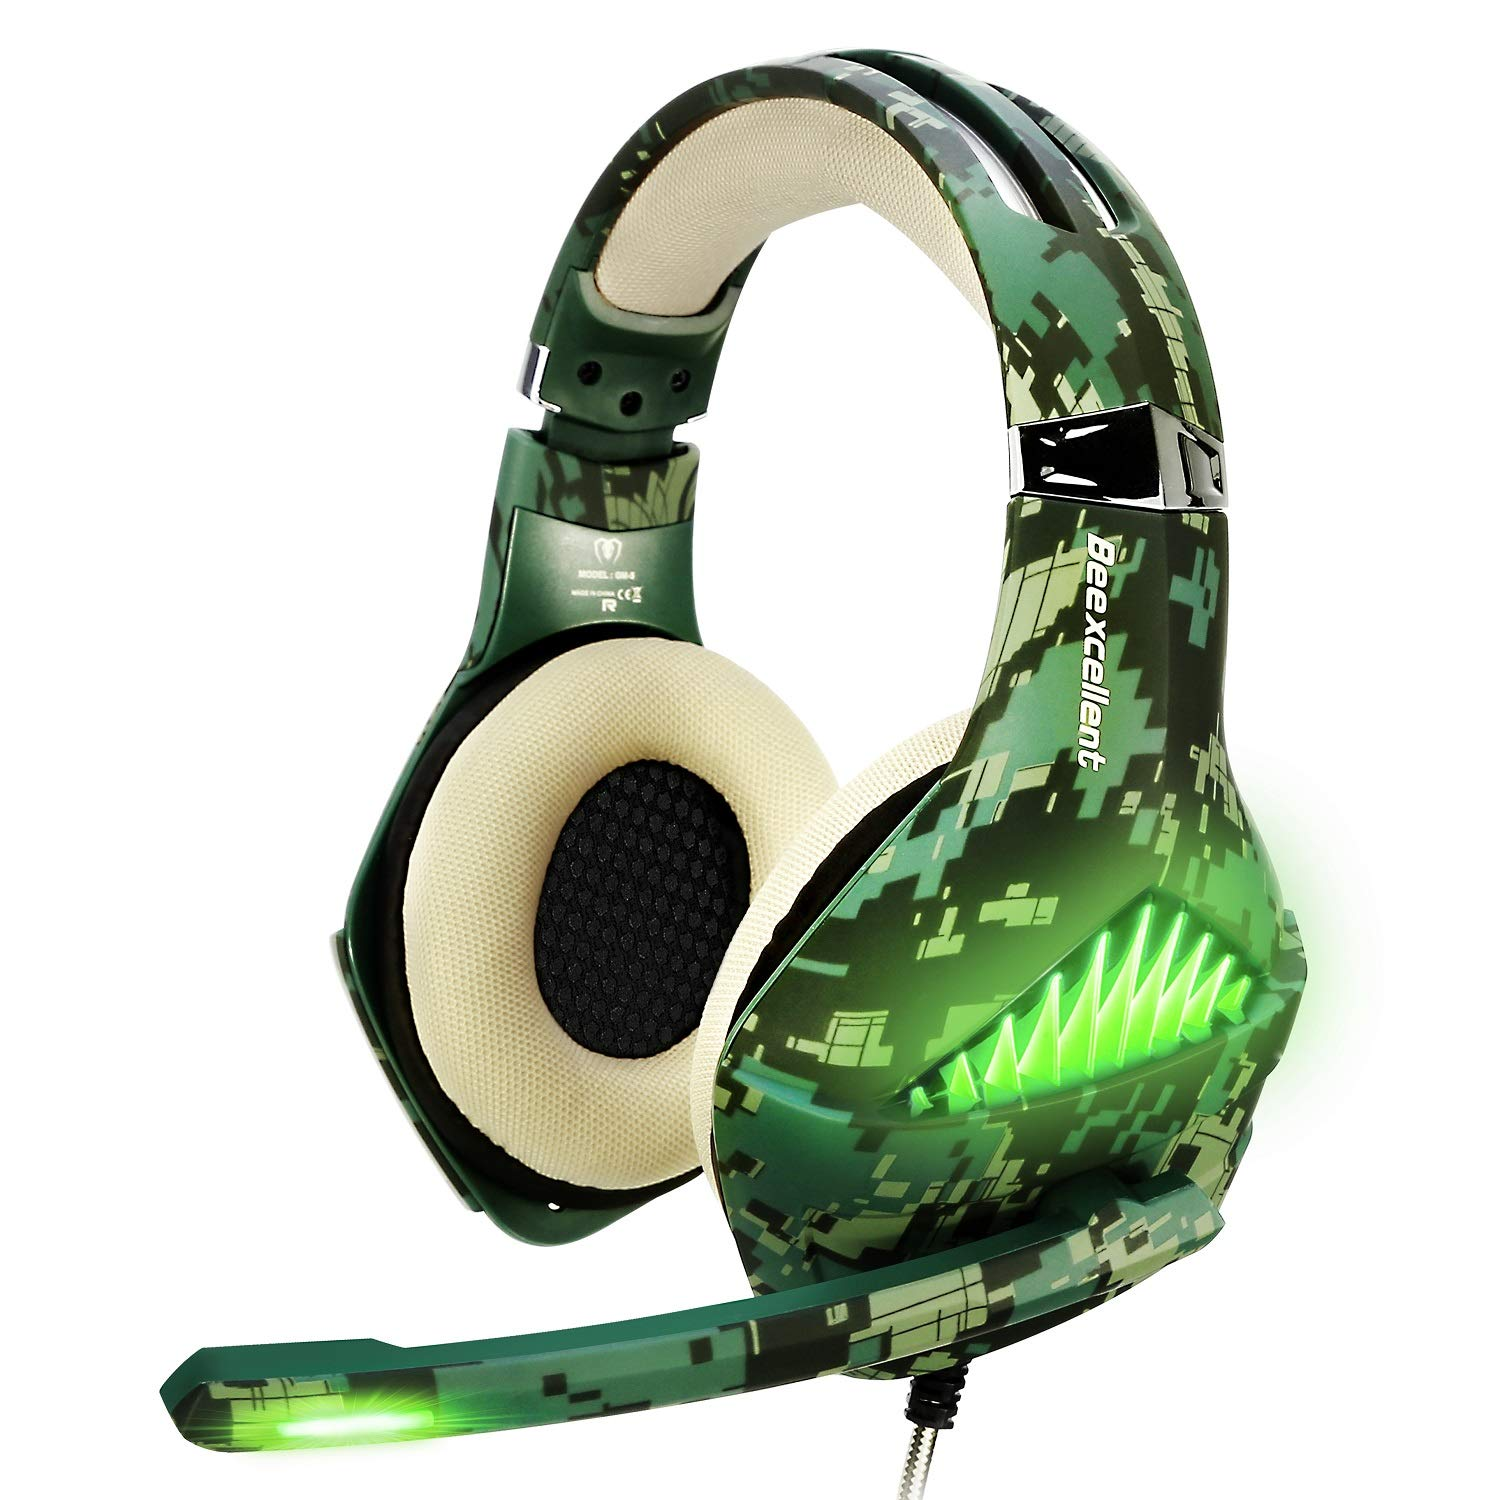 TURN RAISE Upgraded Gaming Headset with Mic for PS4, Laptop, Xbox One, Mac, iPad, Over Ear Headphones PS4 Headset Xbox One Headset with Surround Sound, LED Light Noise Canceling Microphone Camo